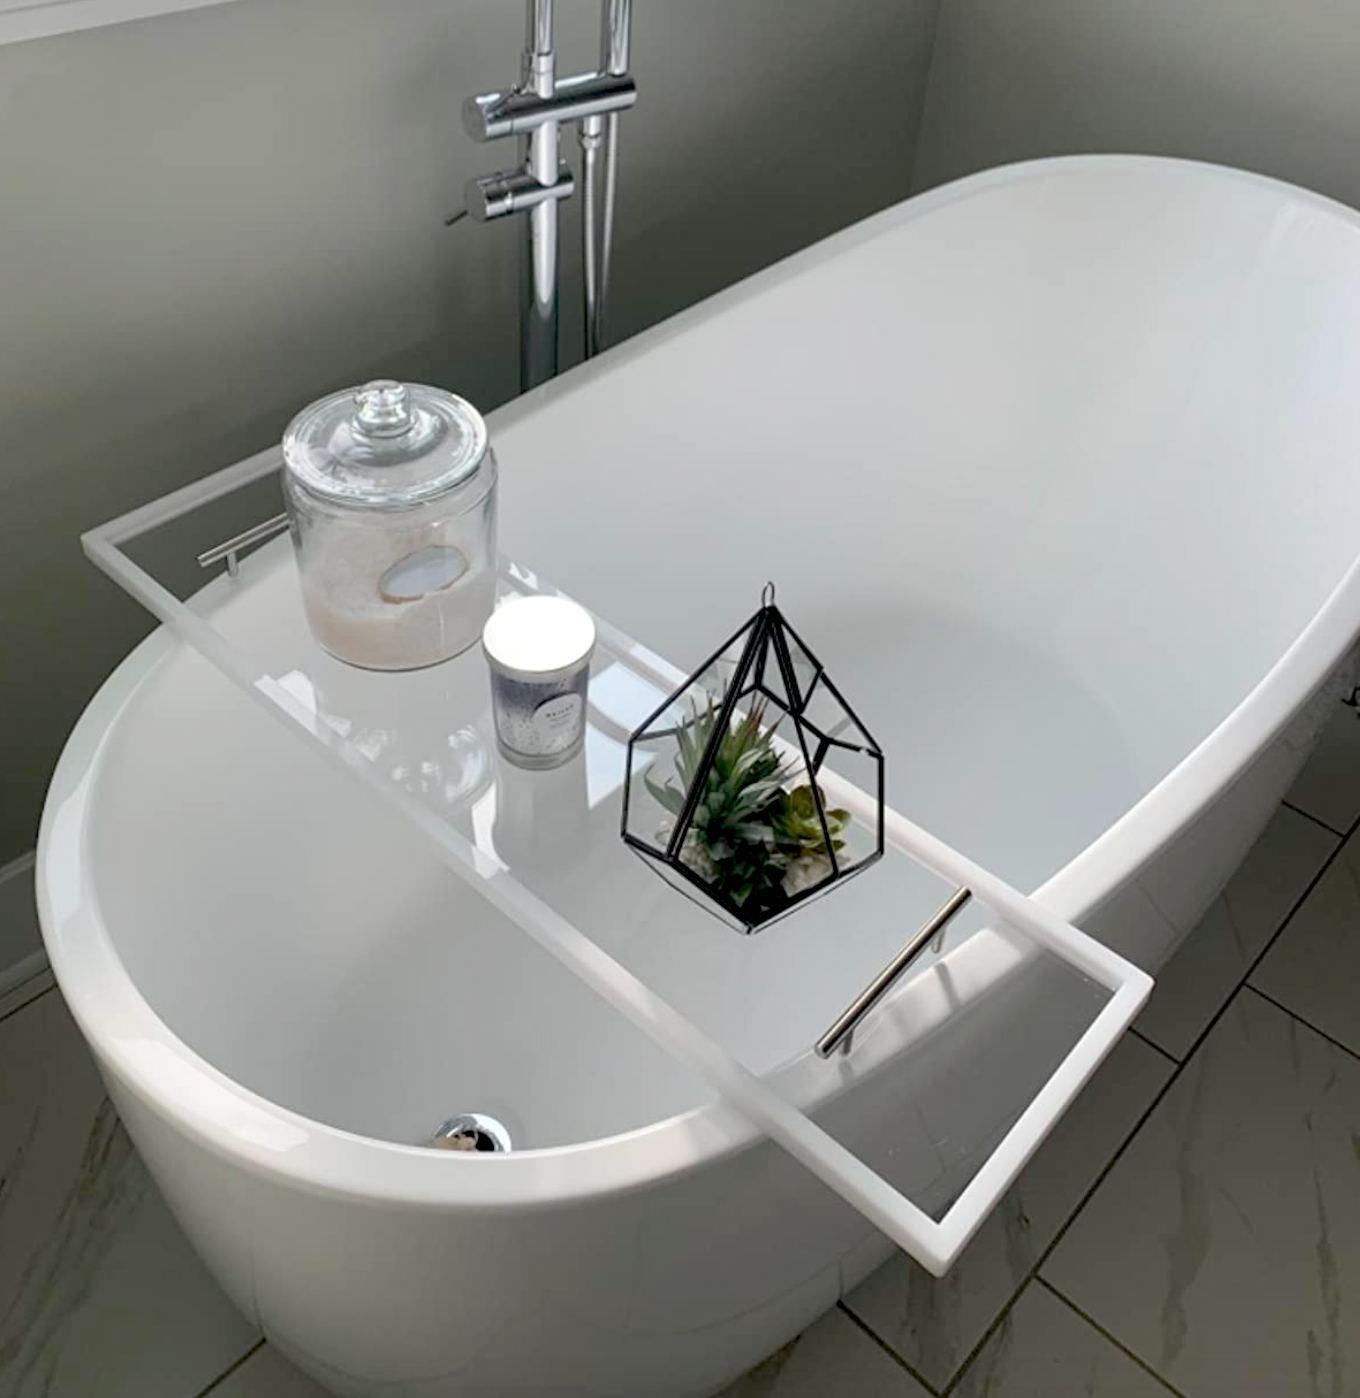 clear tray added over bathtub and styled with a plant, candle, and bath salts